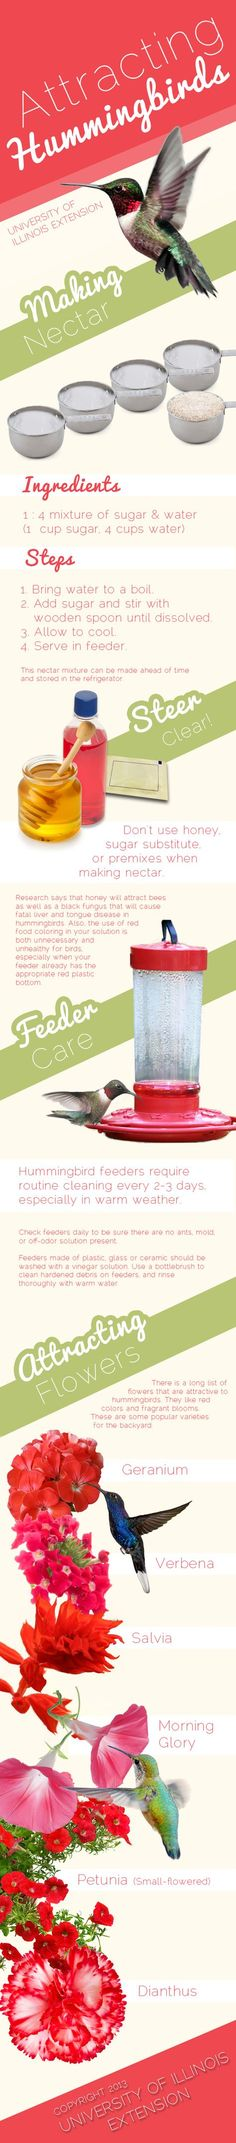 Learn some simple ways to attract hummingbirds to your garden.